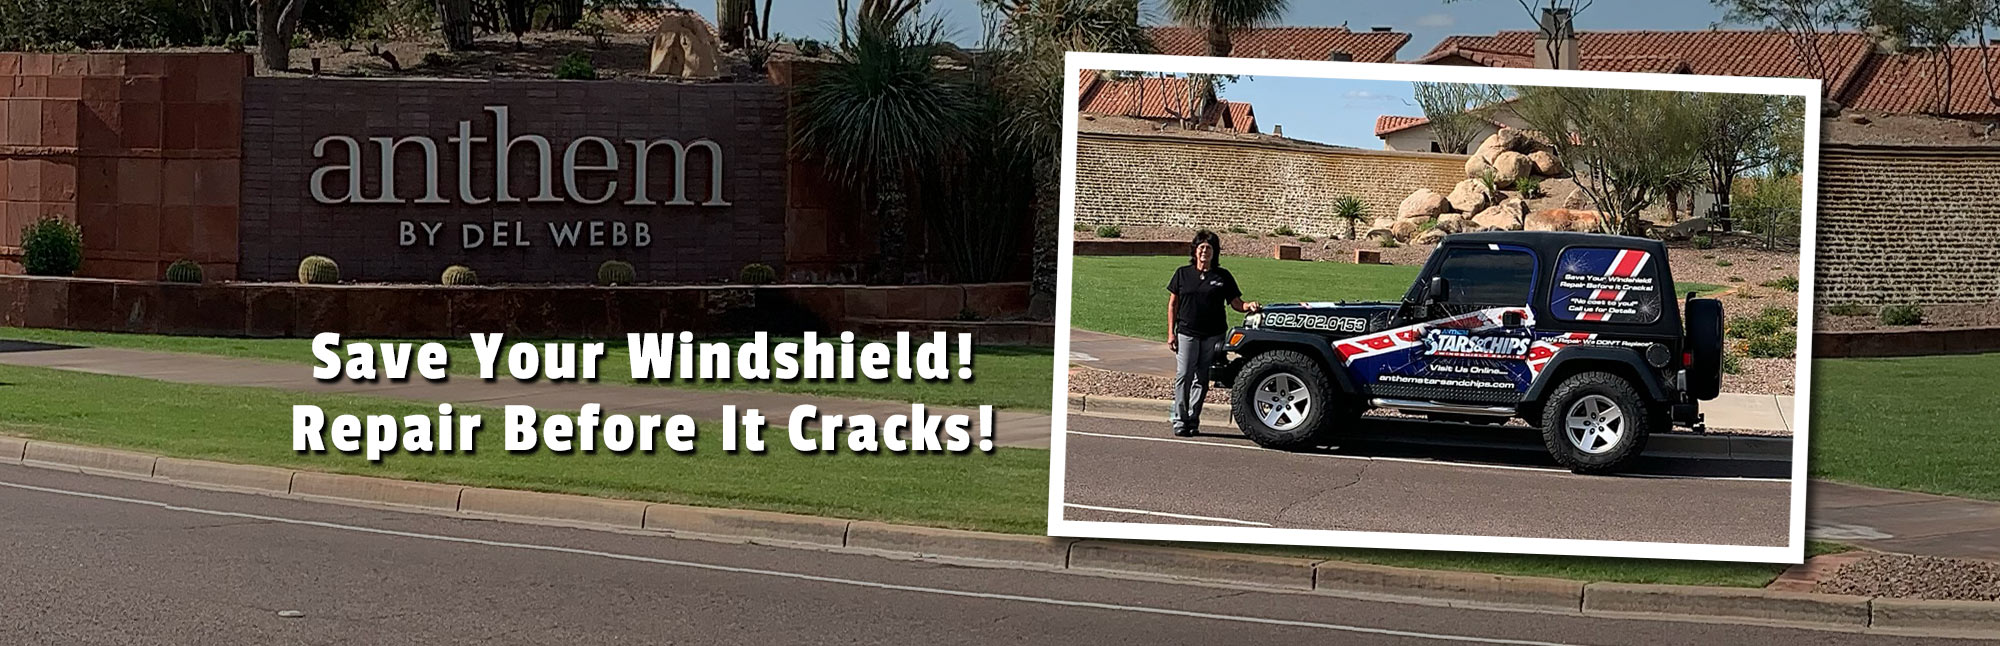 Anthem, Tramonto and New River Windshield Repair Services with Anthem Stars & Chips - Call 602-702-0153 today!